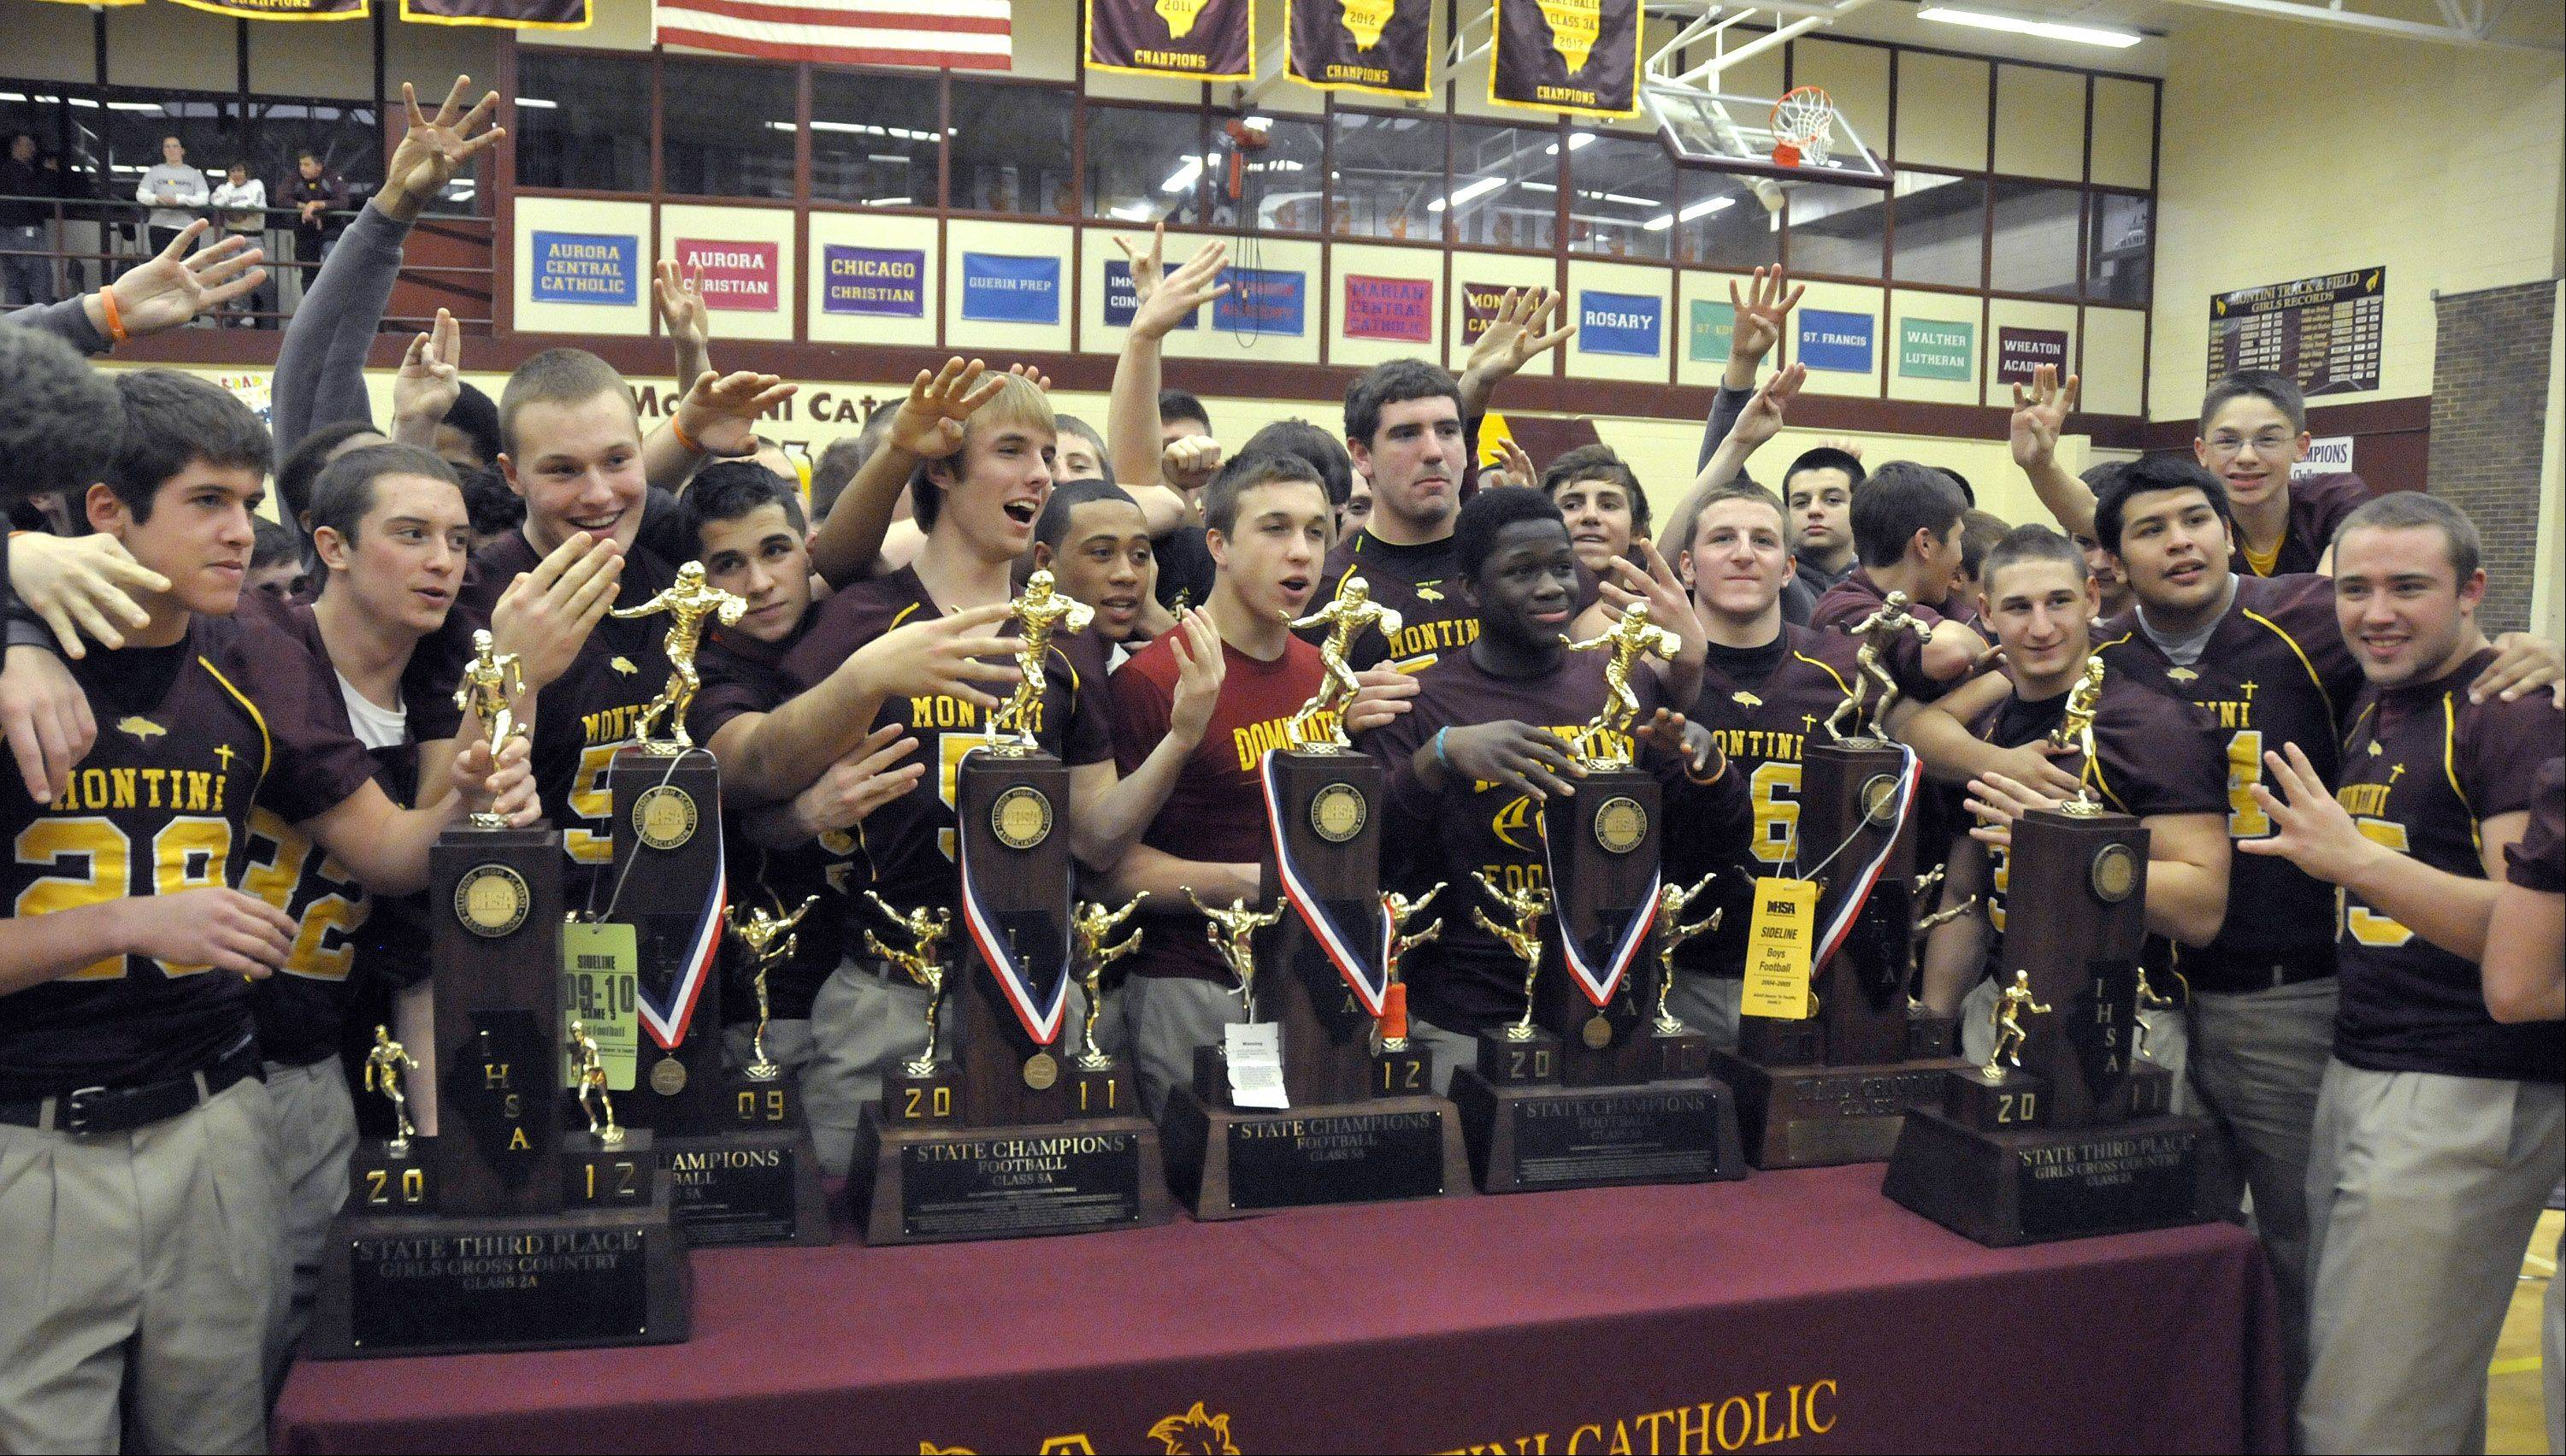 Montini football team members cheer as current and past trophies are displayed Friday afternoon at a pep assembly for winning its fourth consecutive IHSA state football championship last weekend.